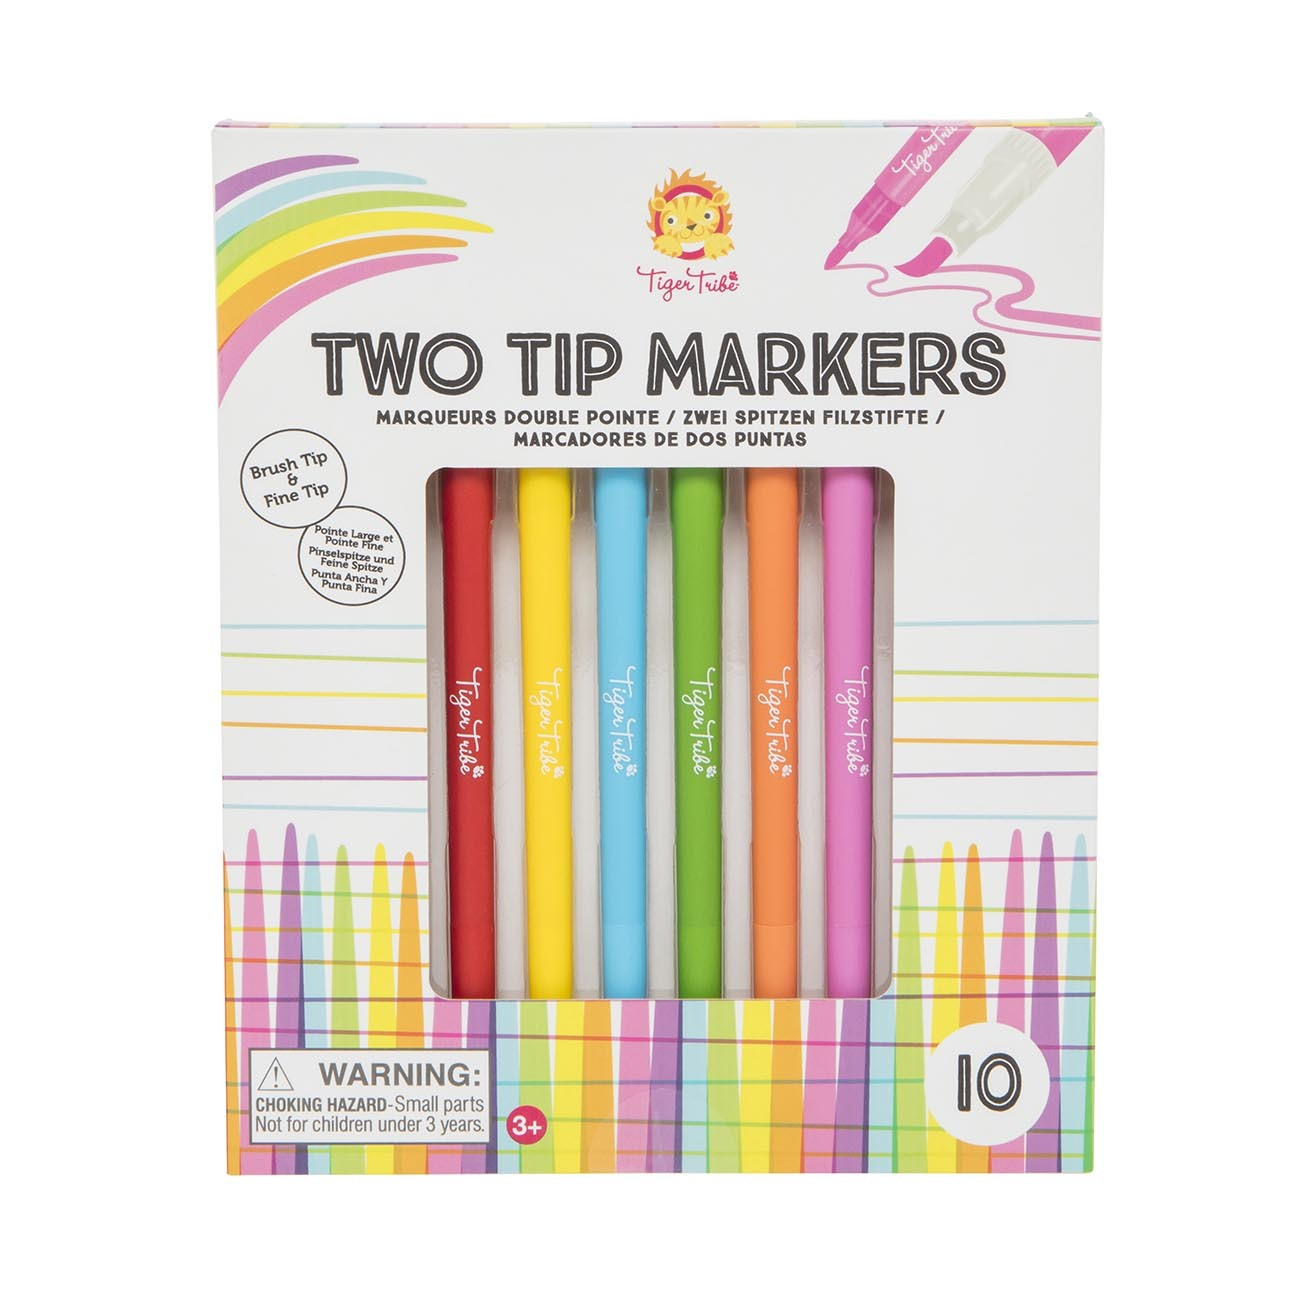 Tiger Tribe Two Tip Markers